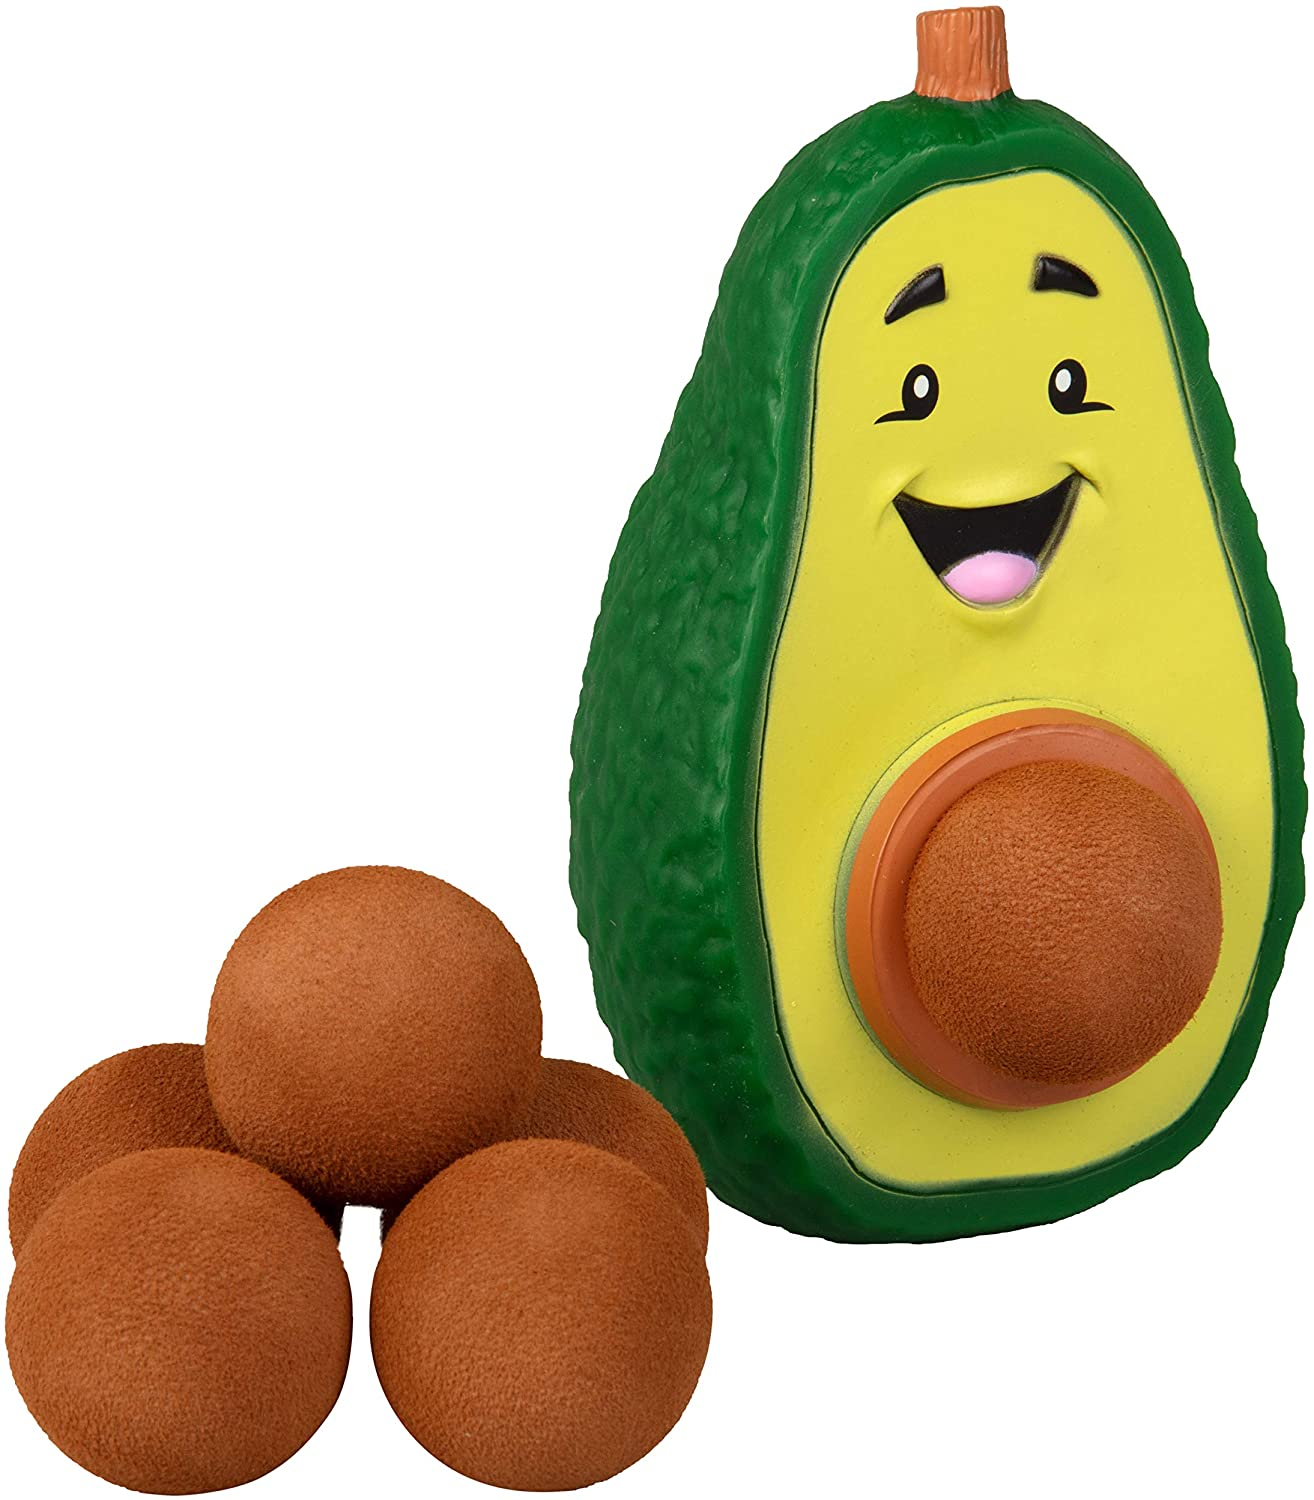 Hog Wild Avocado Popper Toy - Shoot Foam Balls Up to 20 Feet - 6 Balls Included - Age 4+